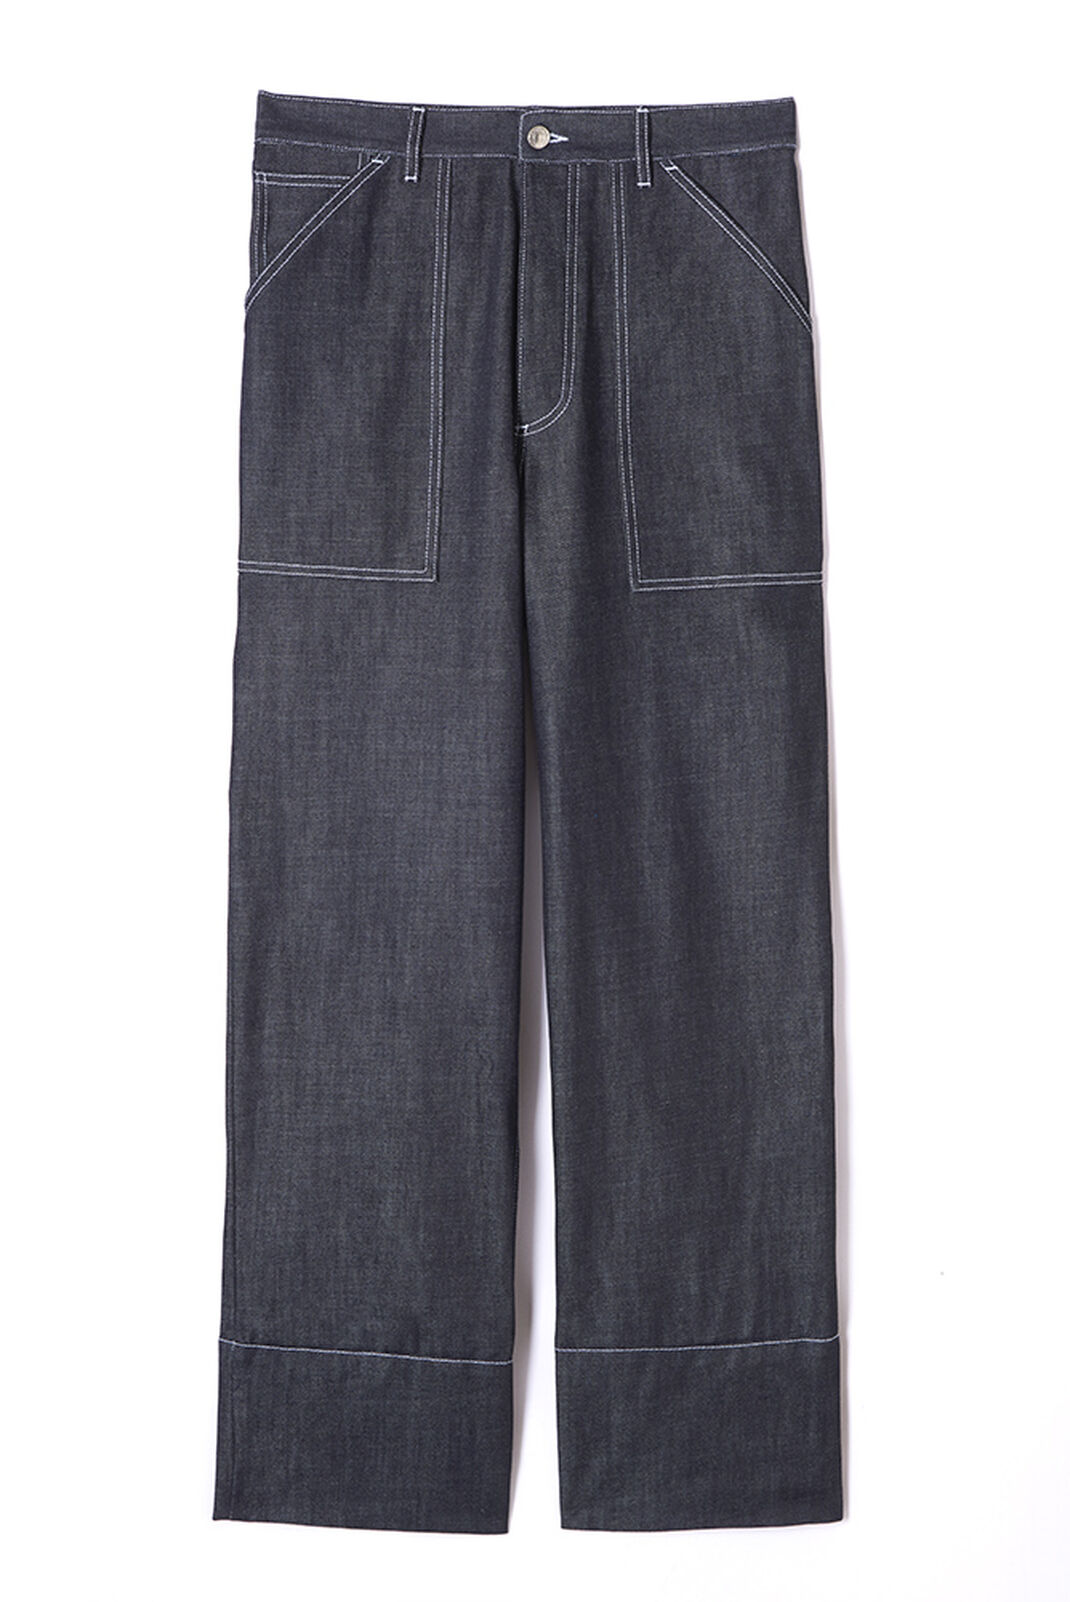 NAVY BLUE High waisted wide leg jeans for women KENZO